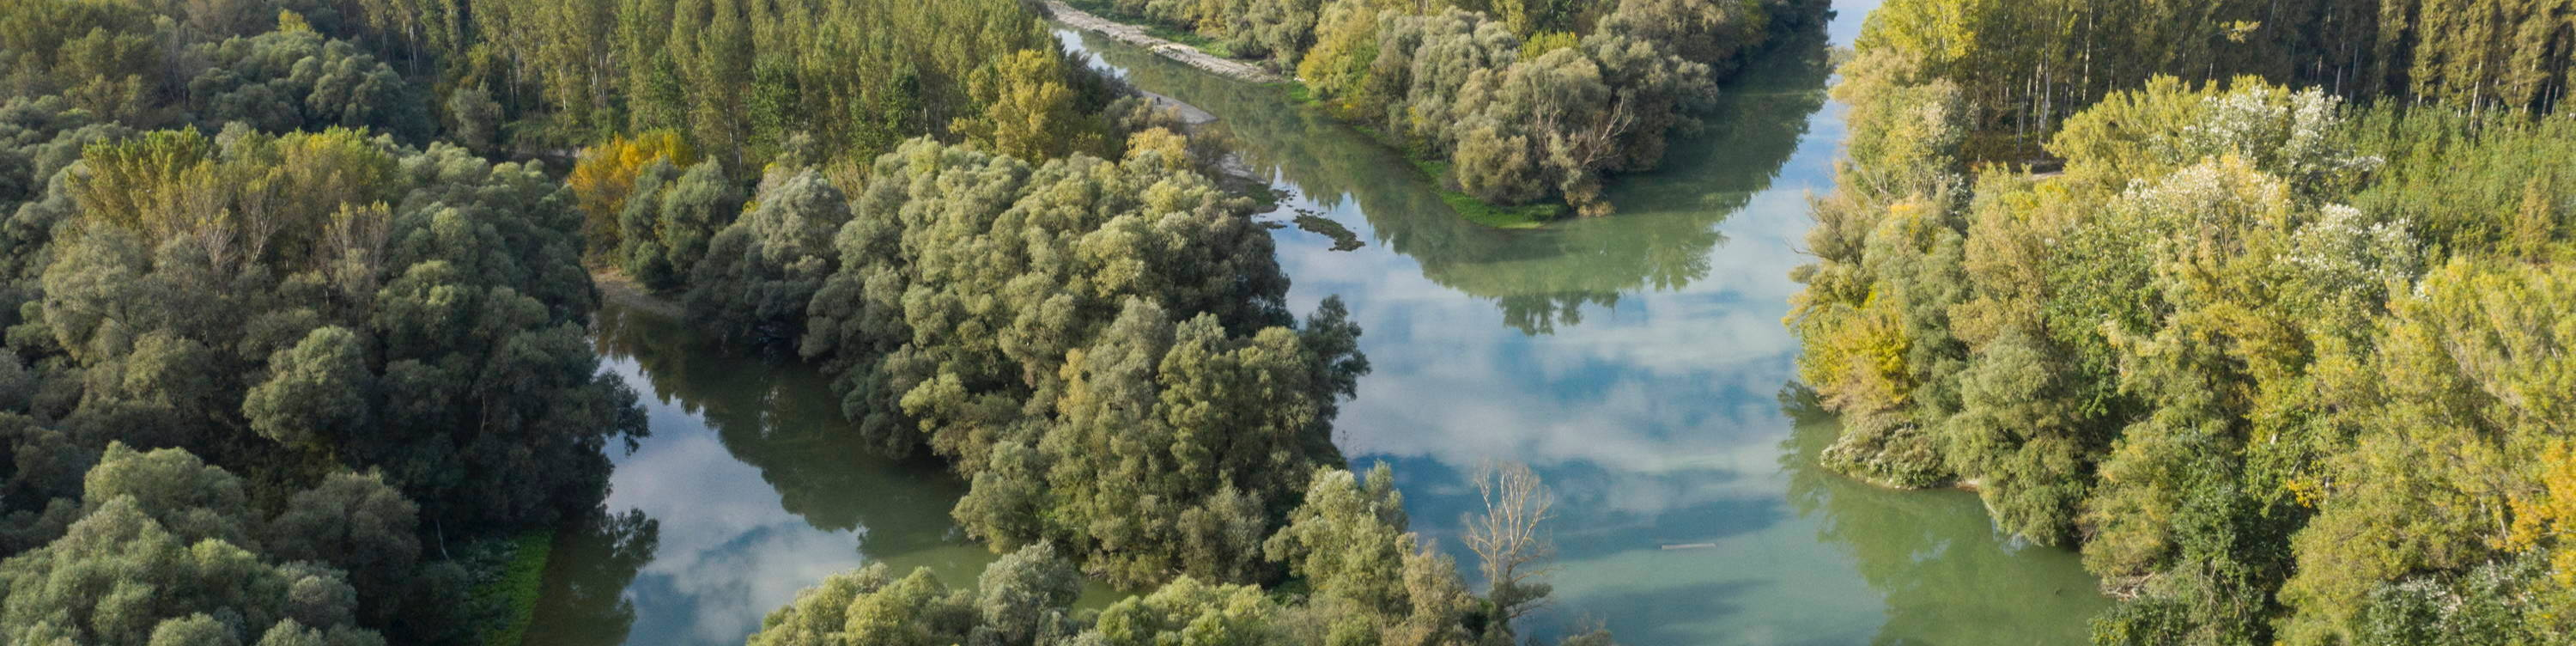 A drone image of the turquoise streams of the Danube running through native and monoculture forests